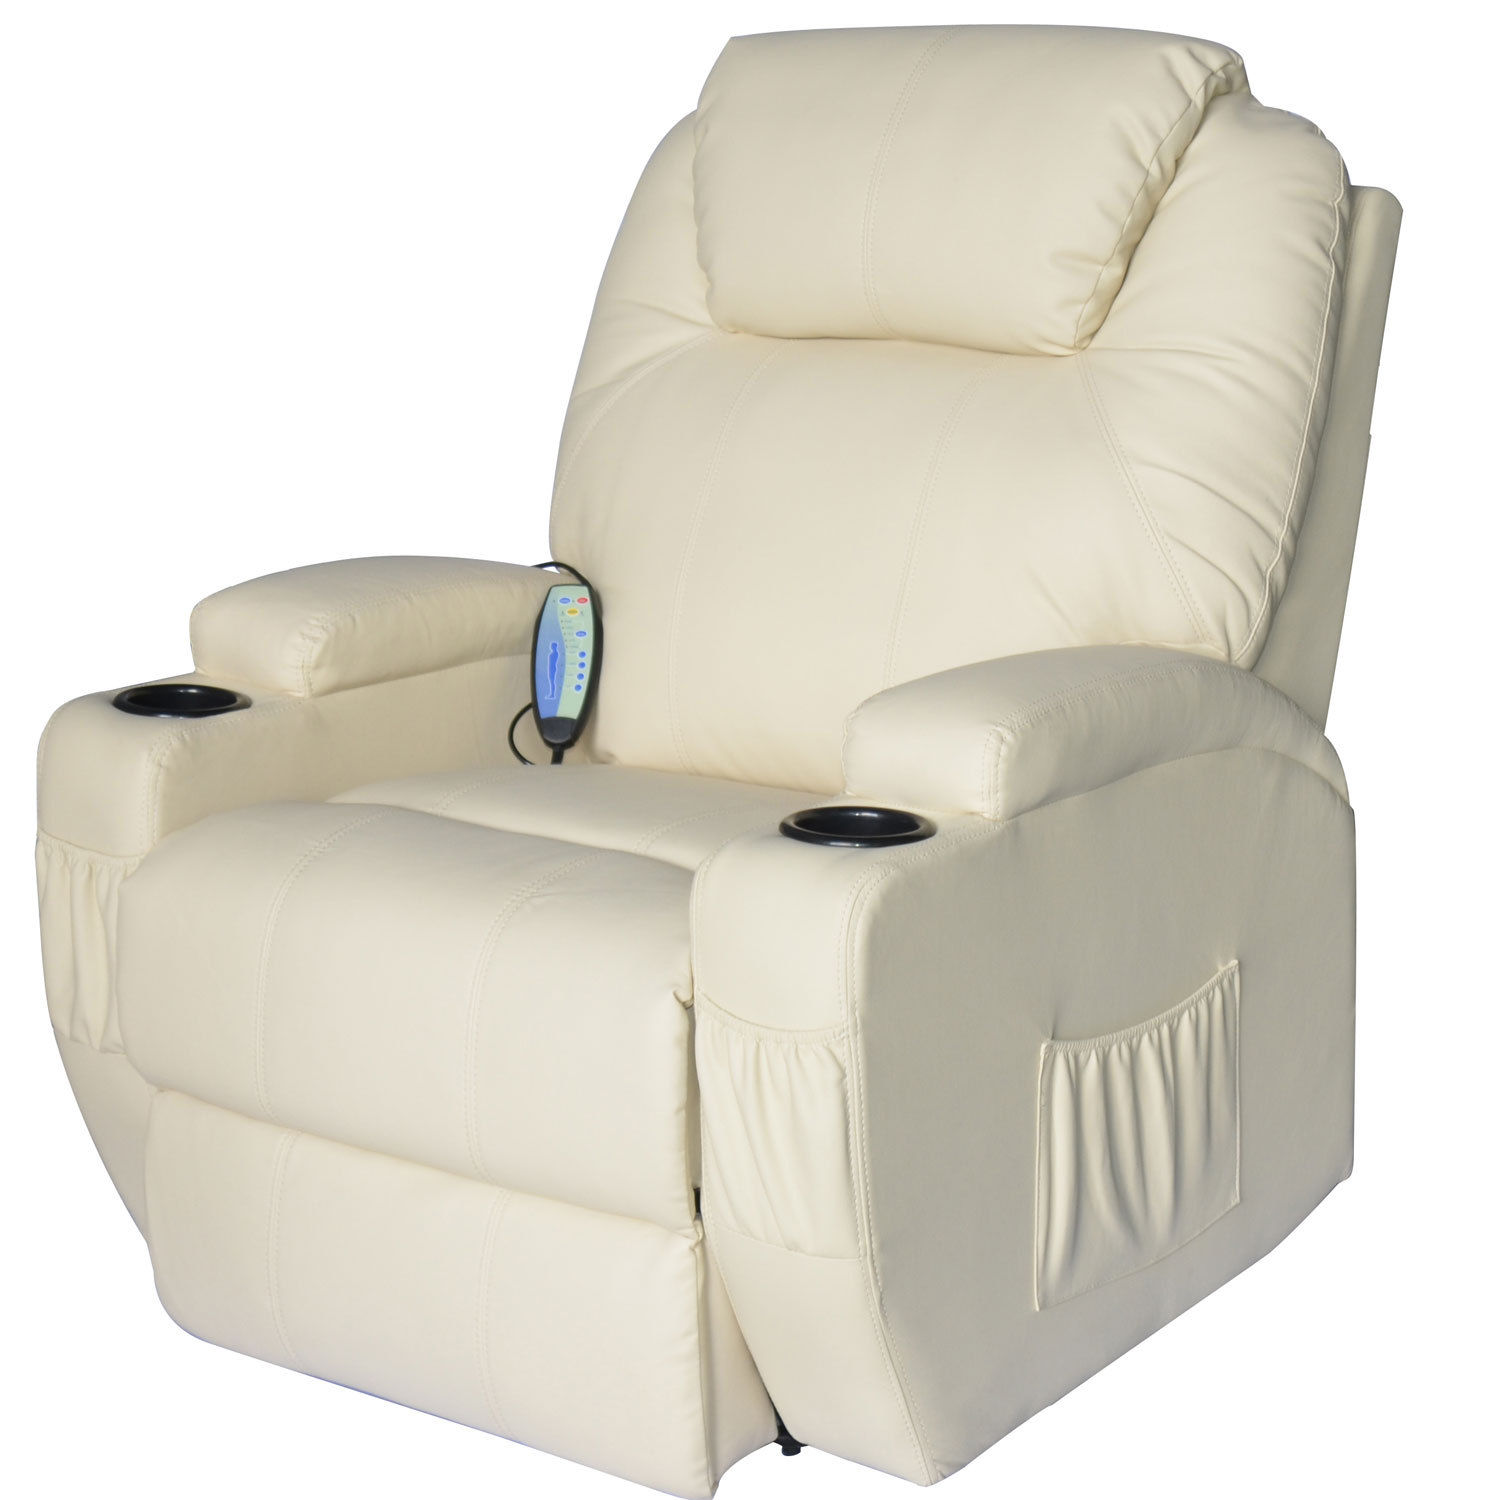 Massage-Recliner-Sofa-Leather-Vibrating-Heated-Chair-Lounge-Executive-w-Control